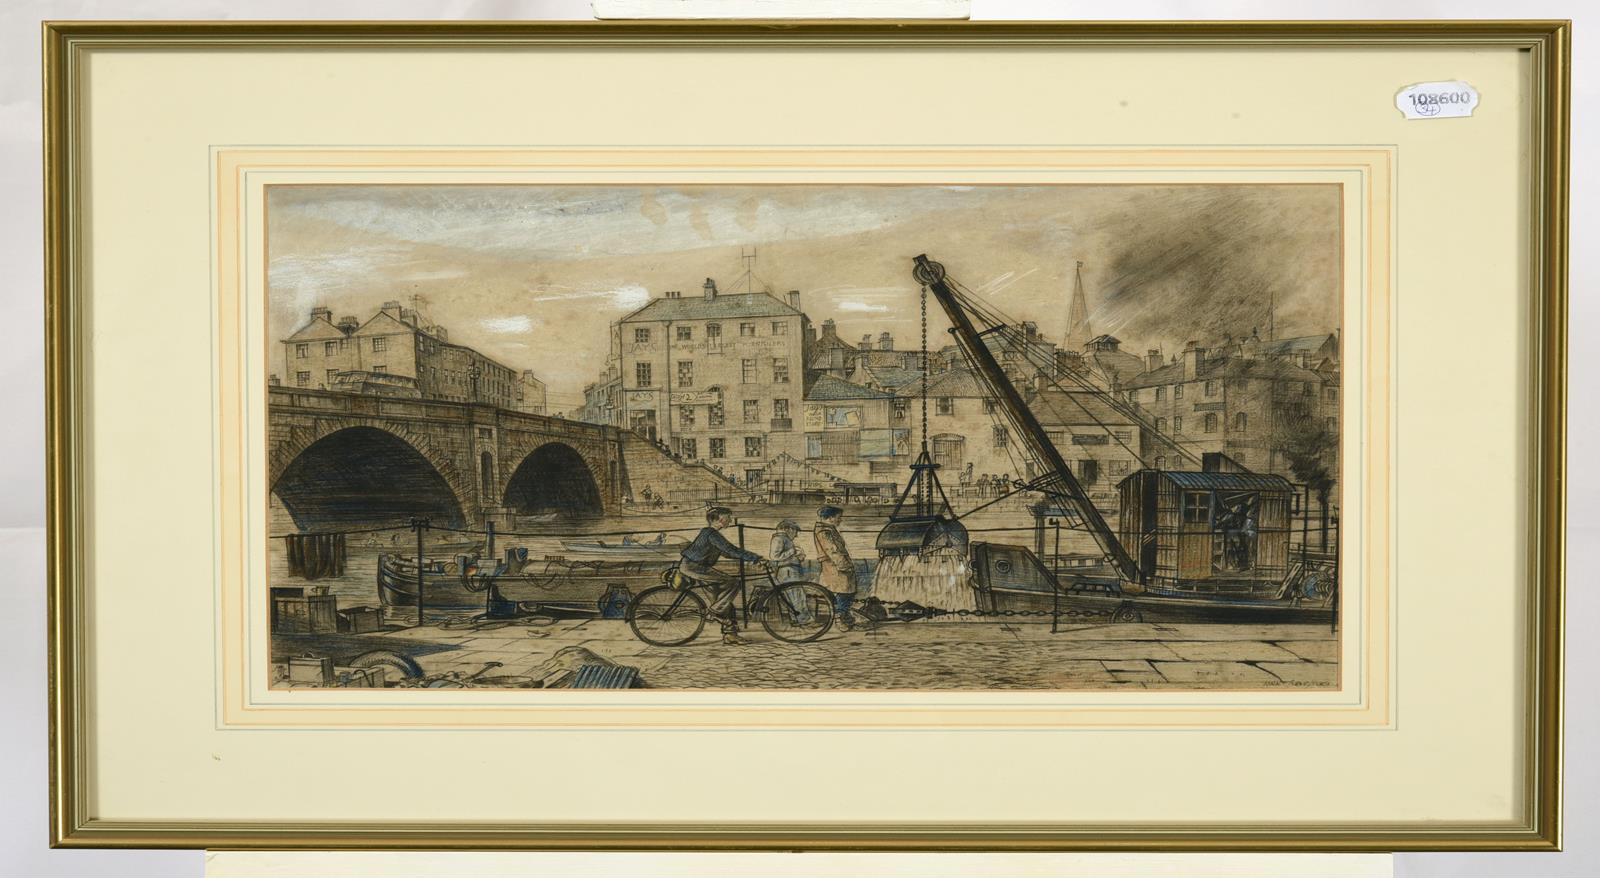 Frederick (Fred) Cecil Jones RBA (1891-1966) ''York'' Signed, inscribed and dated 1943, mixed media, - Image 2 of 2